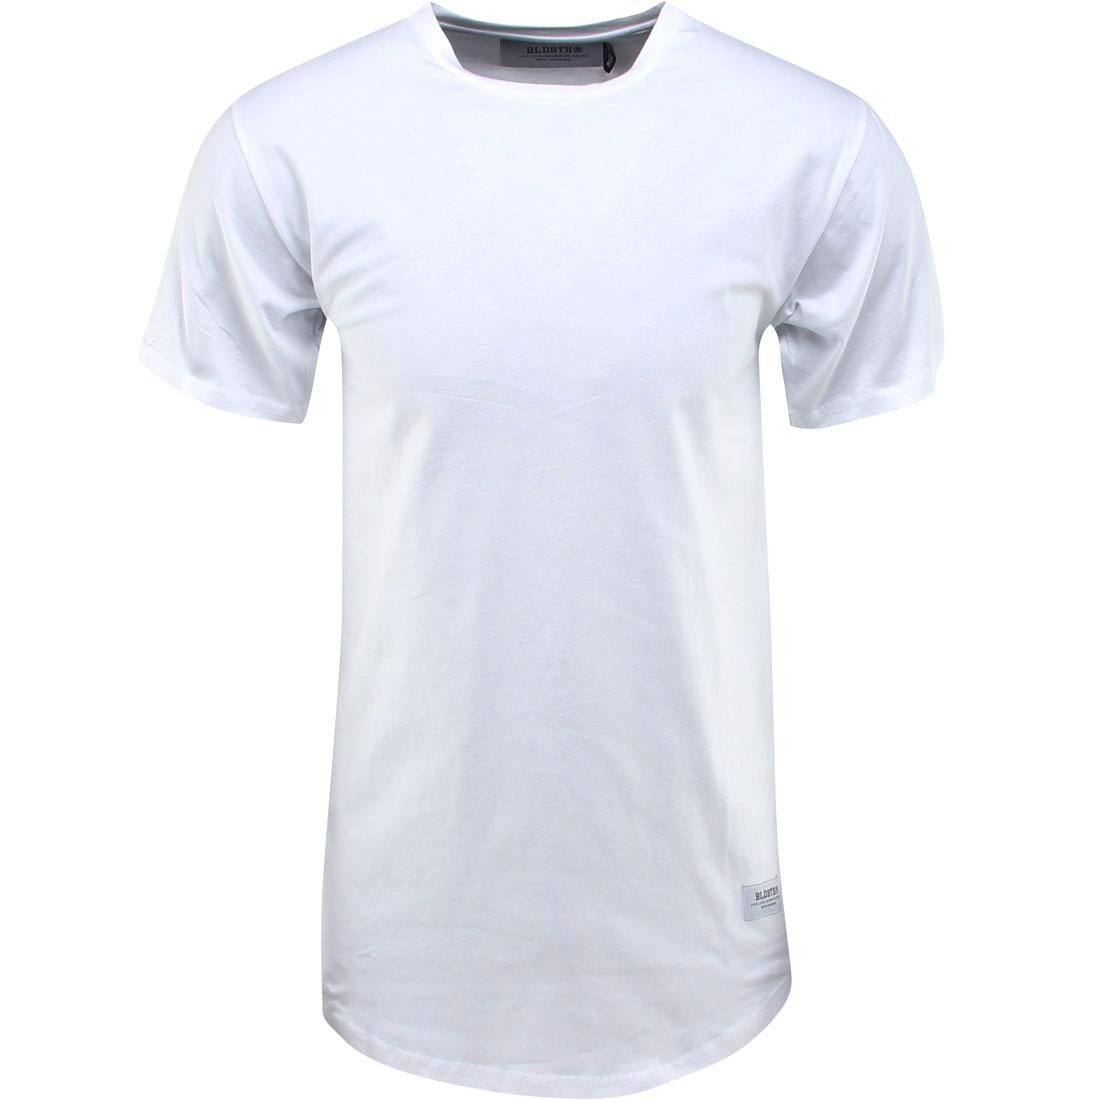 Bloodbath Cotton Extended Tee (white)